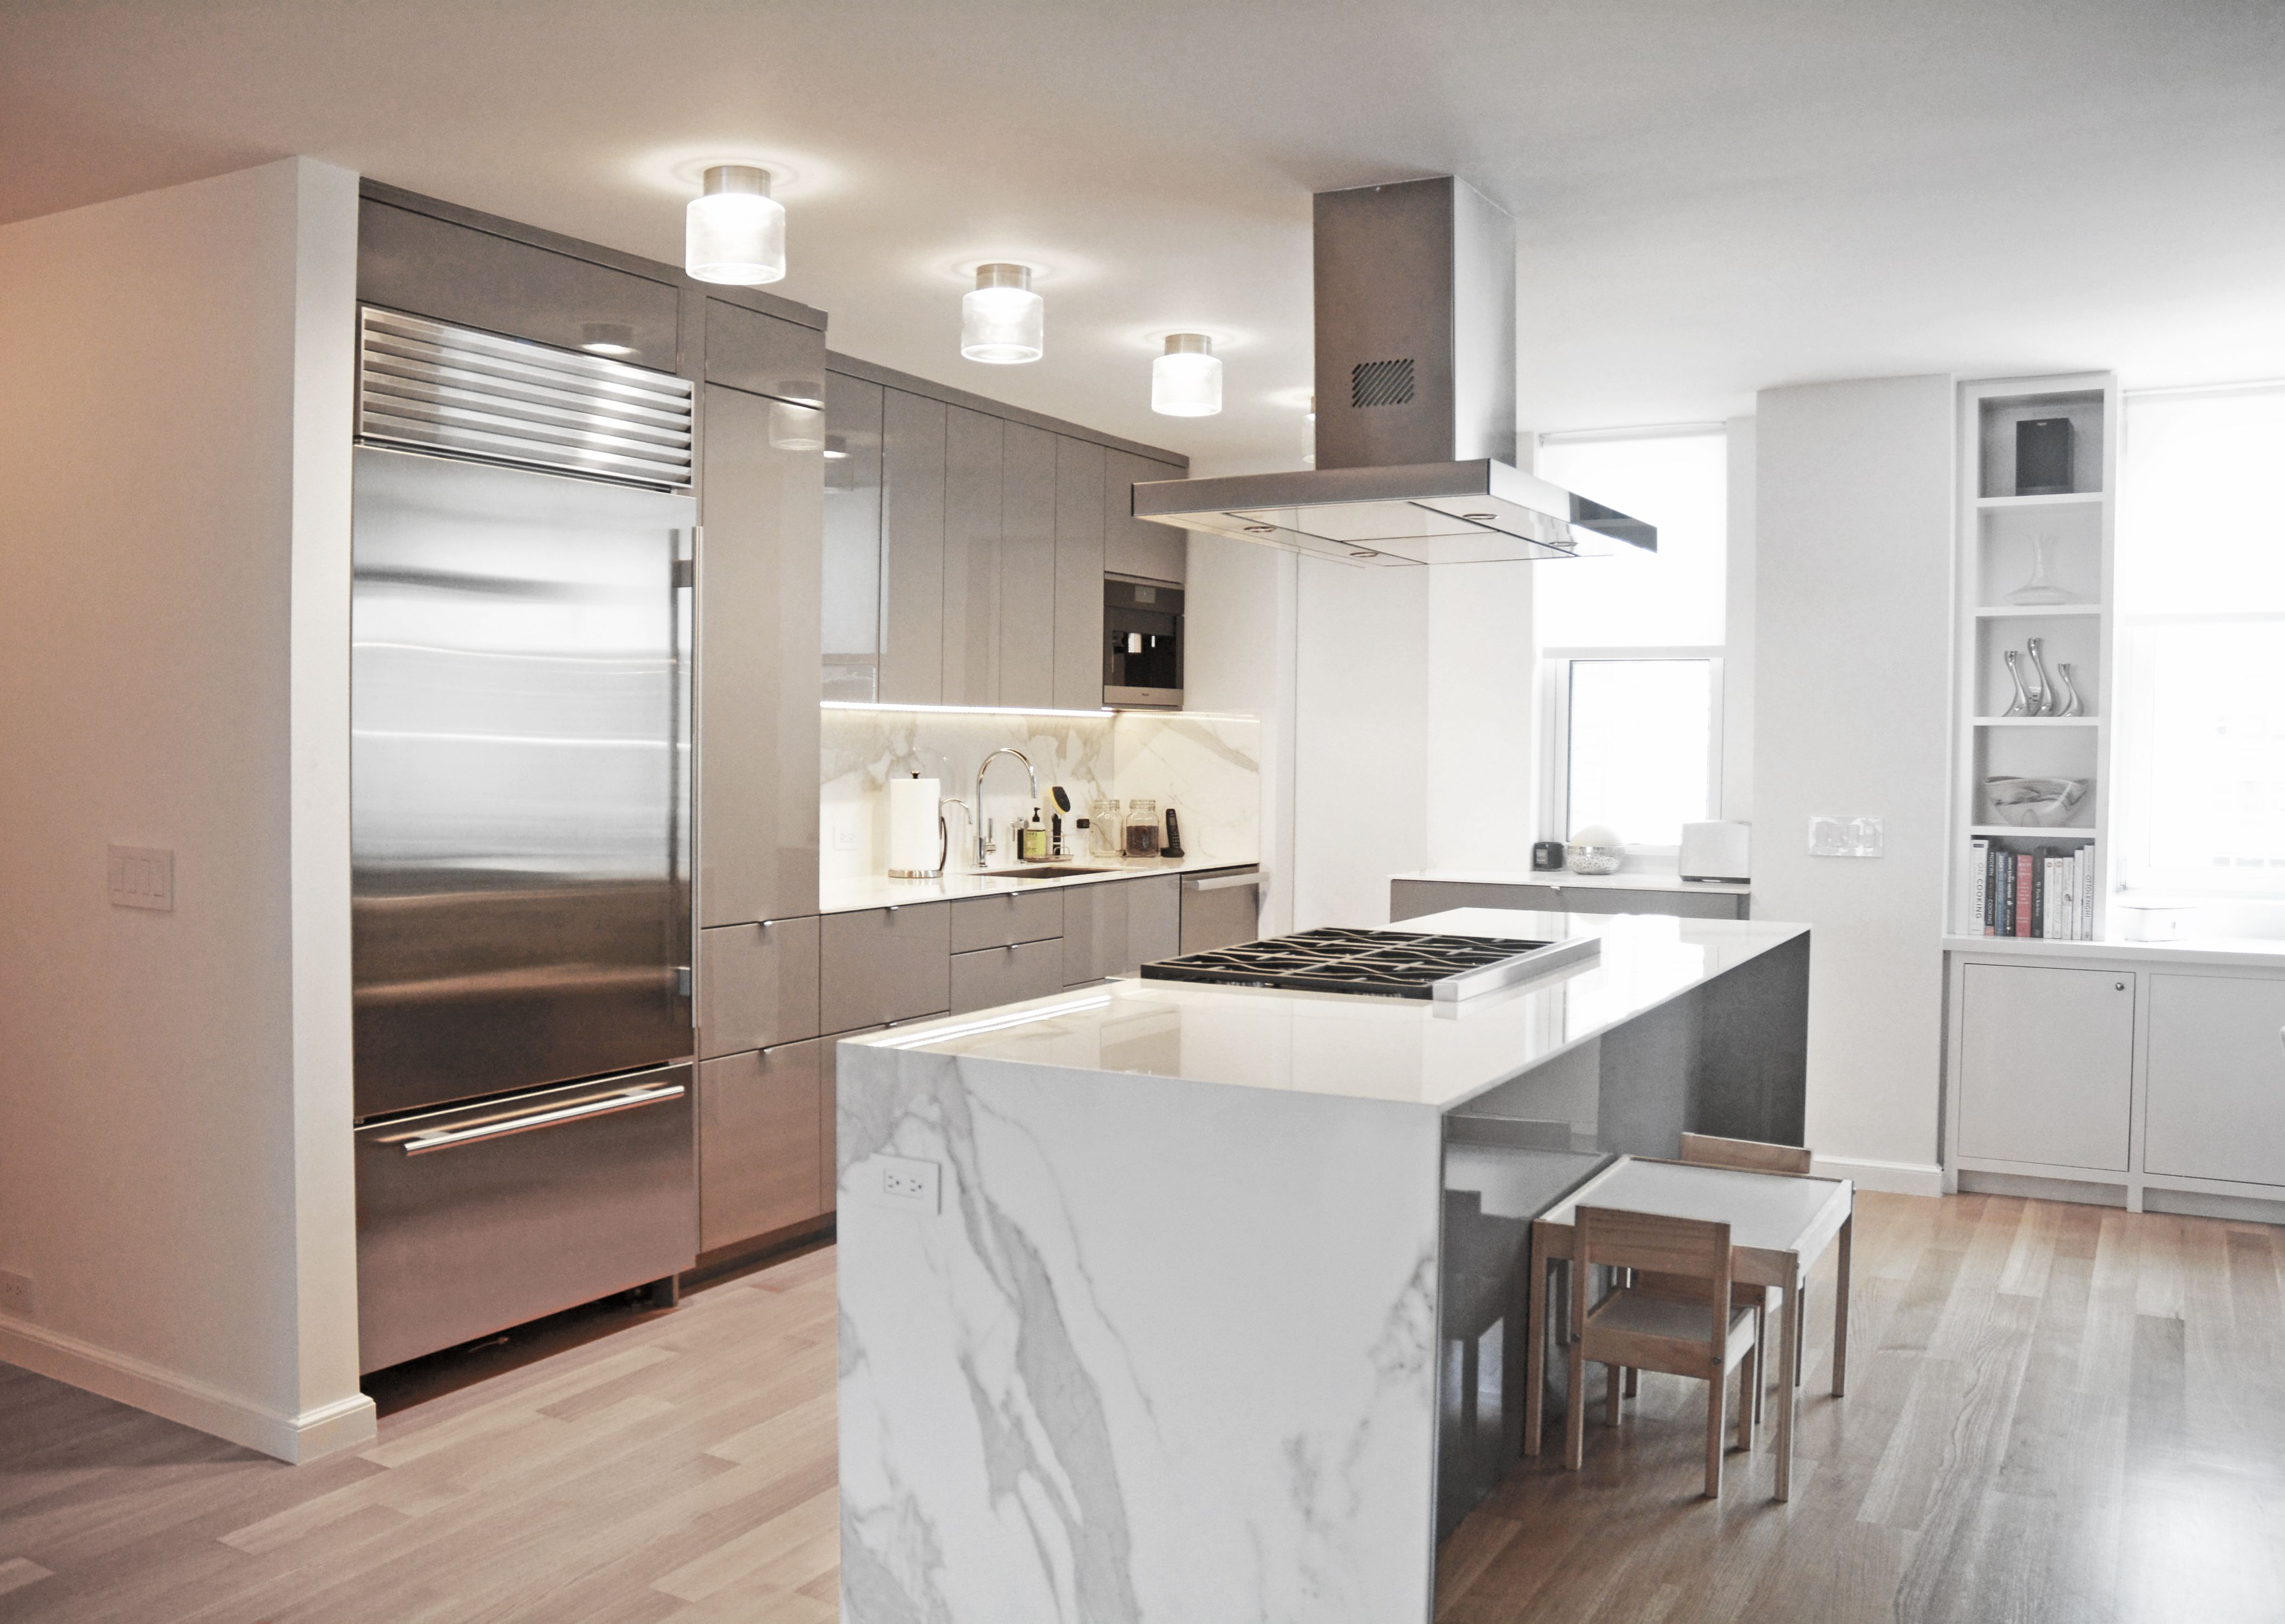 Neolith Countertops Grey High Gloss Cabinets Modern Kitchen Layout Kitchen Design Kitchen Layouts With Island